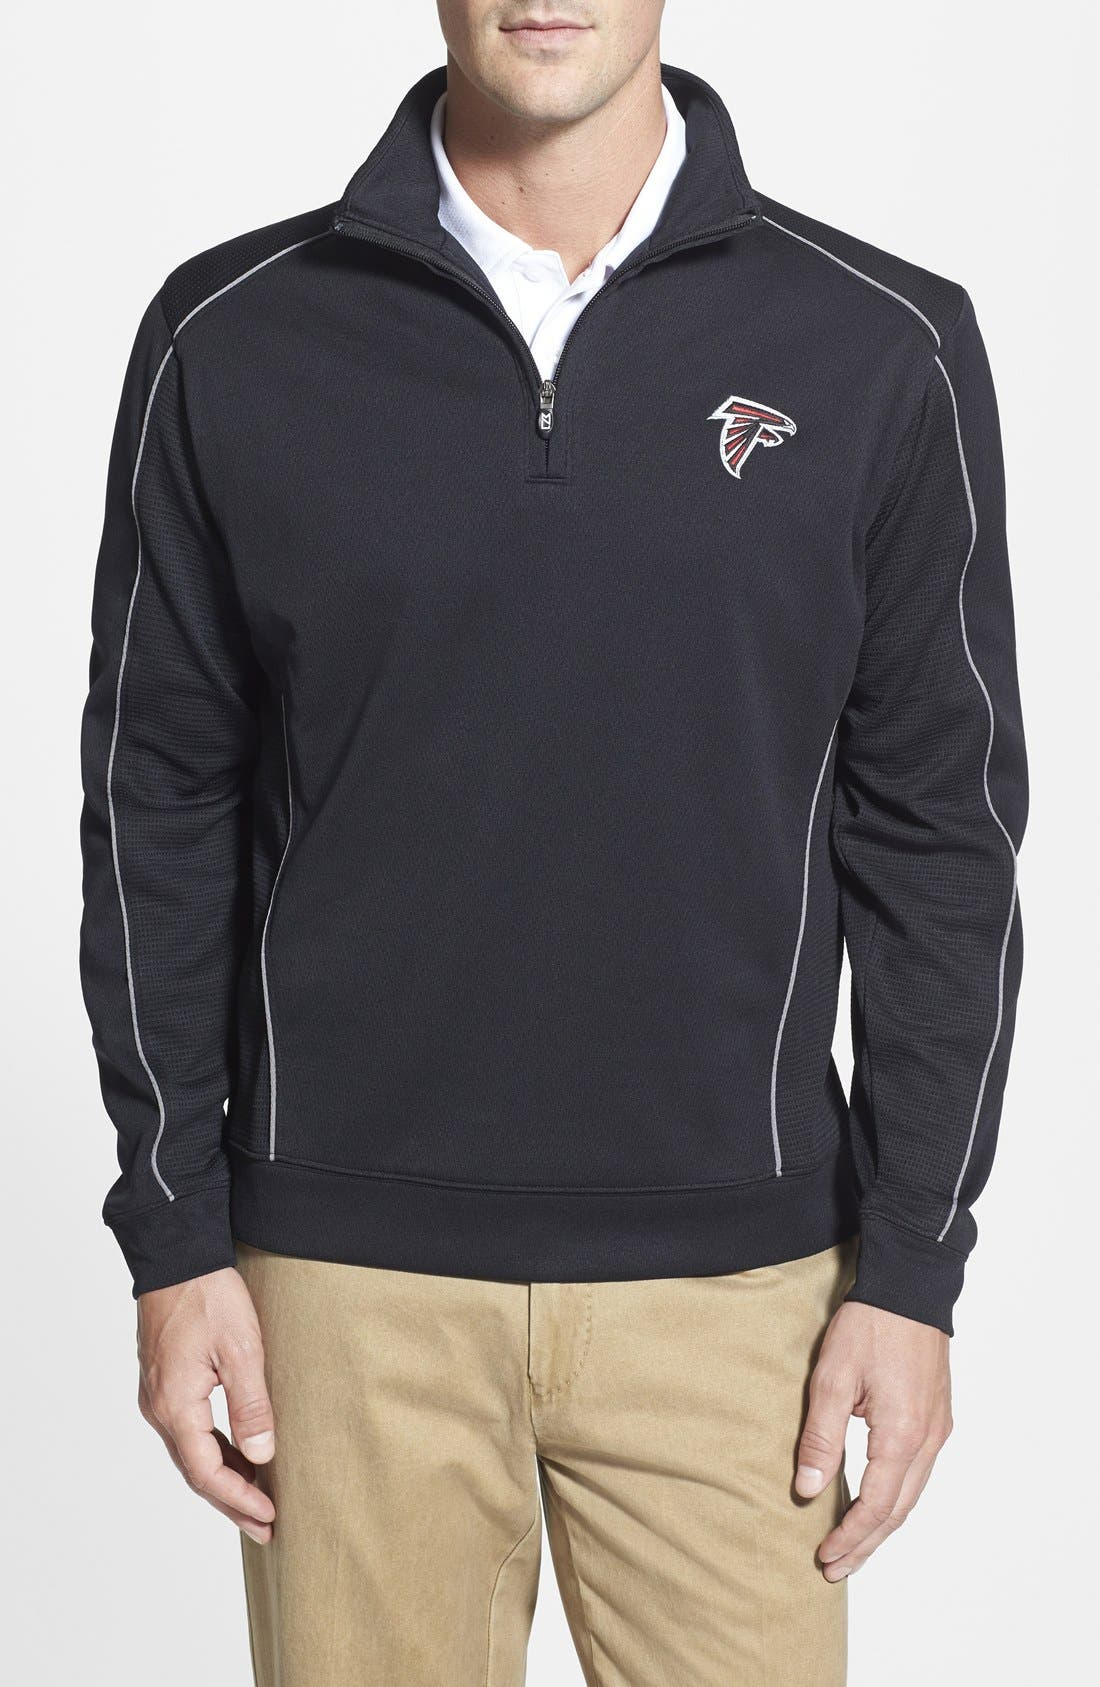 Cutter & Buck 'Atlanta Falcons - Edge' DryTec Moisture Wicking Half Zip Pullover (Big & Tall)